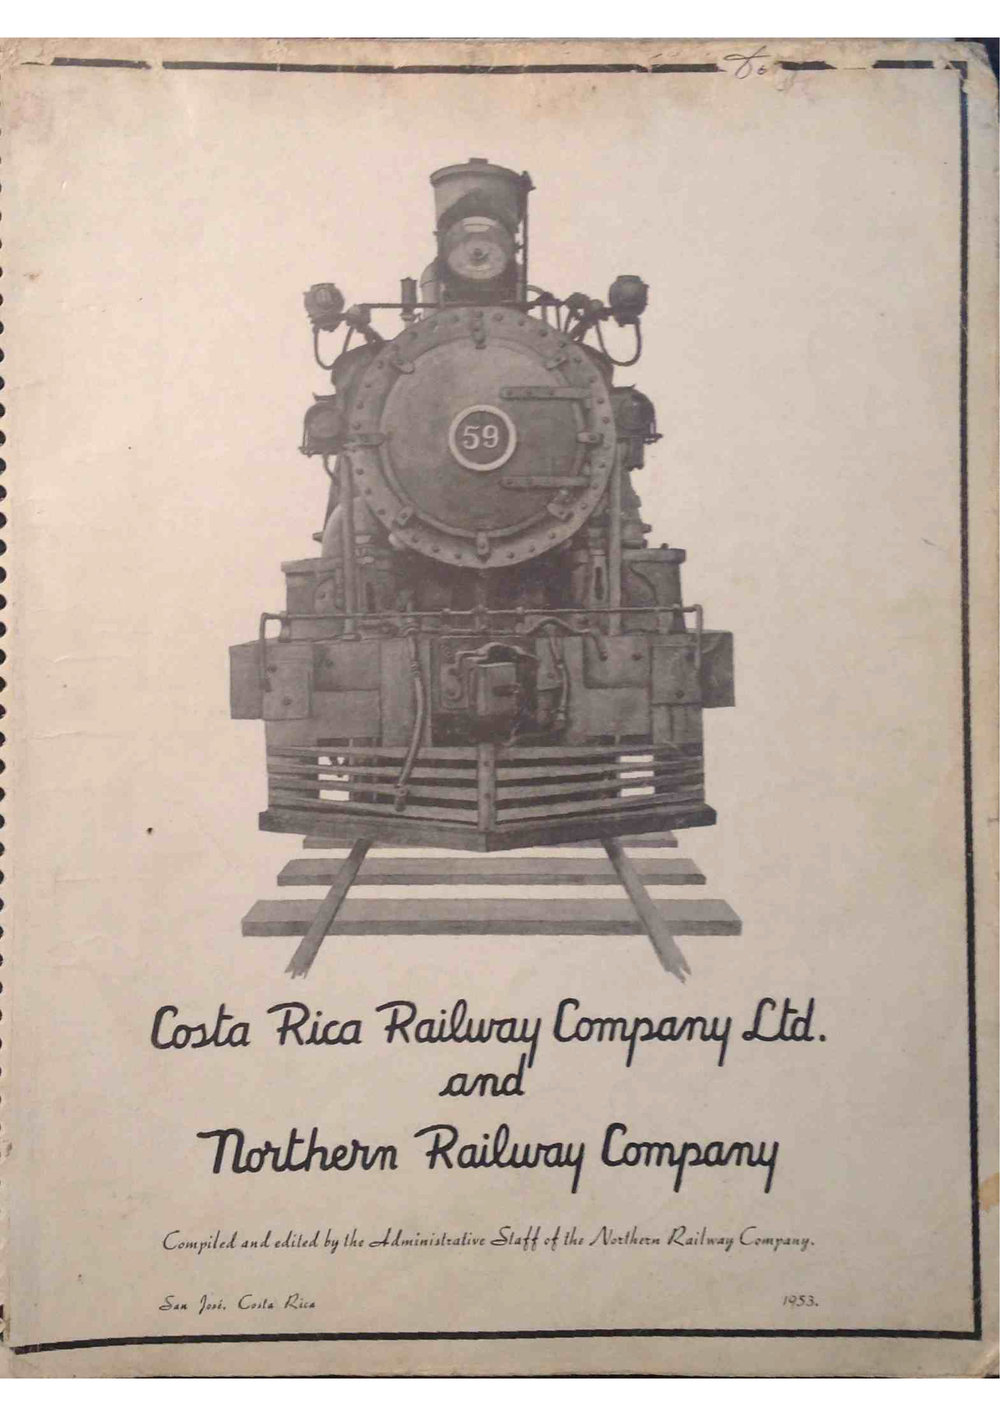 Costa Rica railway co 1953 from Davila fam partial scan_Page_01.jpg